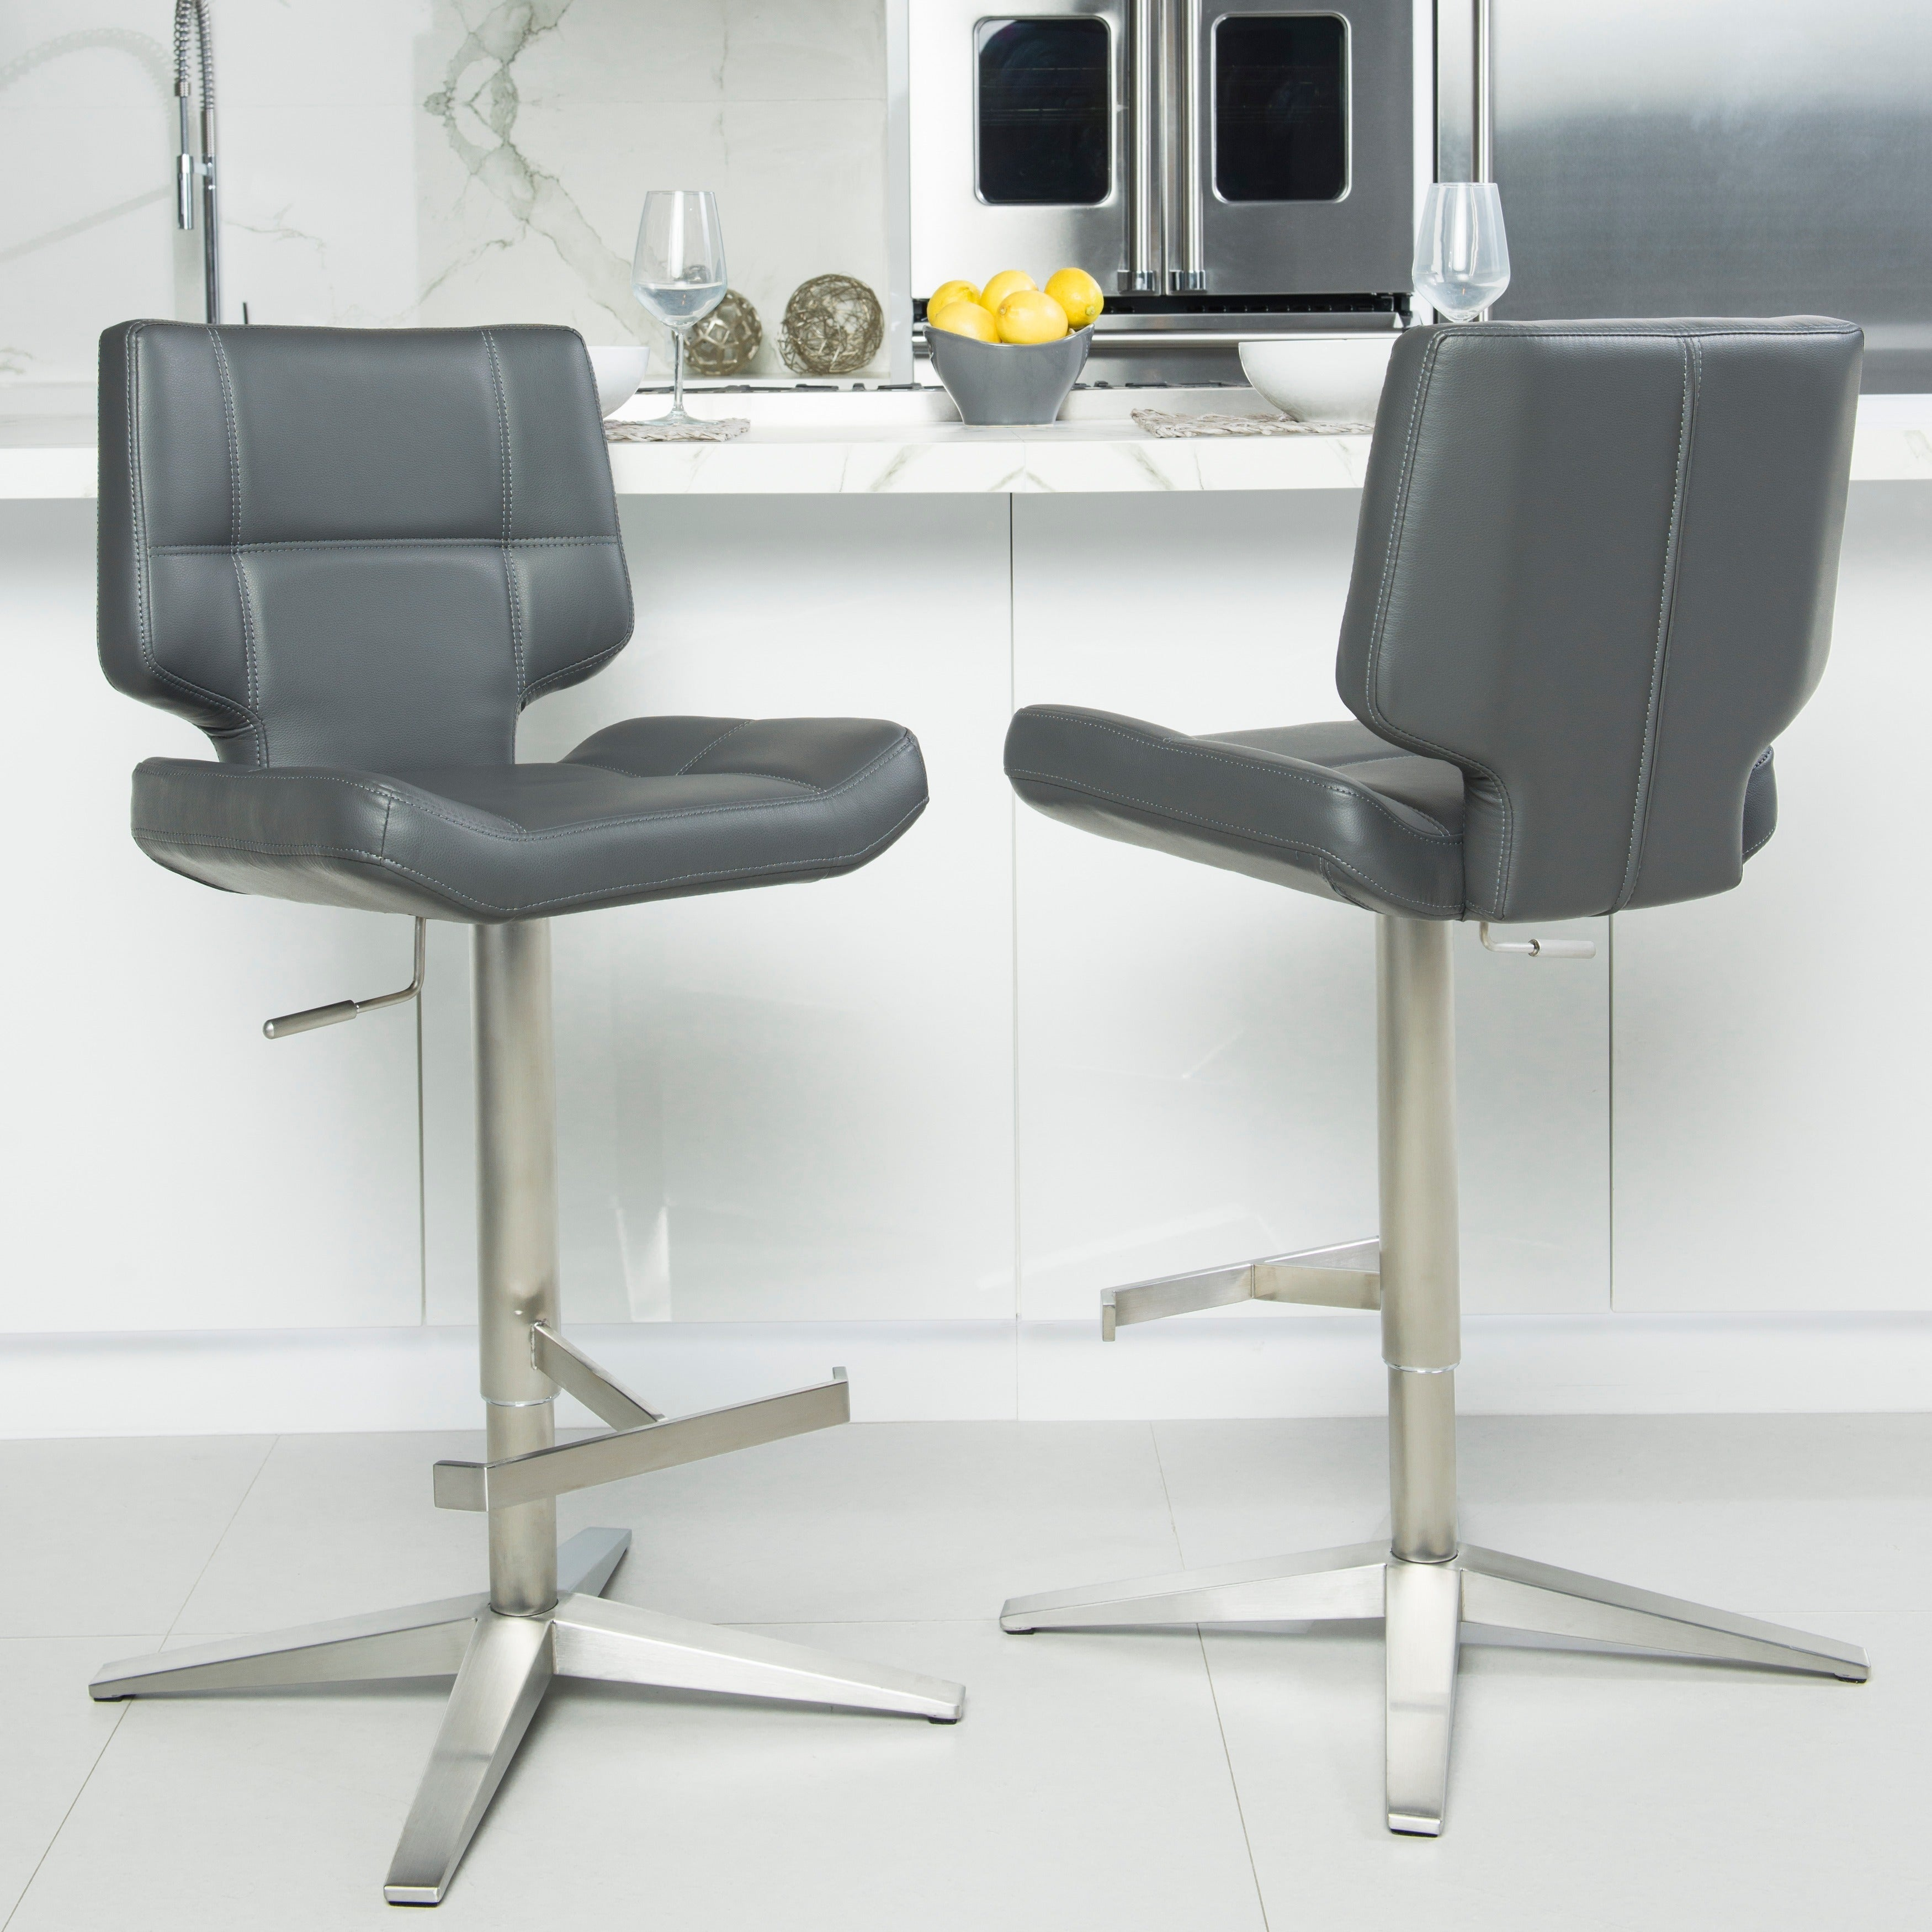 Shop Mix Brushed Stainless Steel X Base High Back Adjustable Height